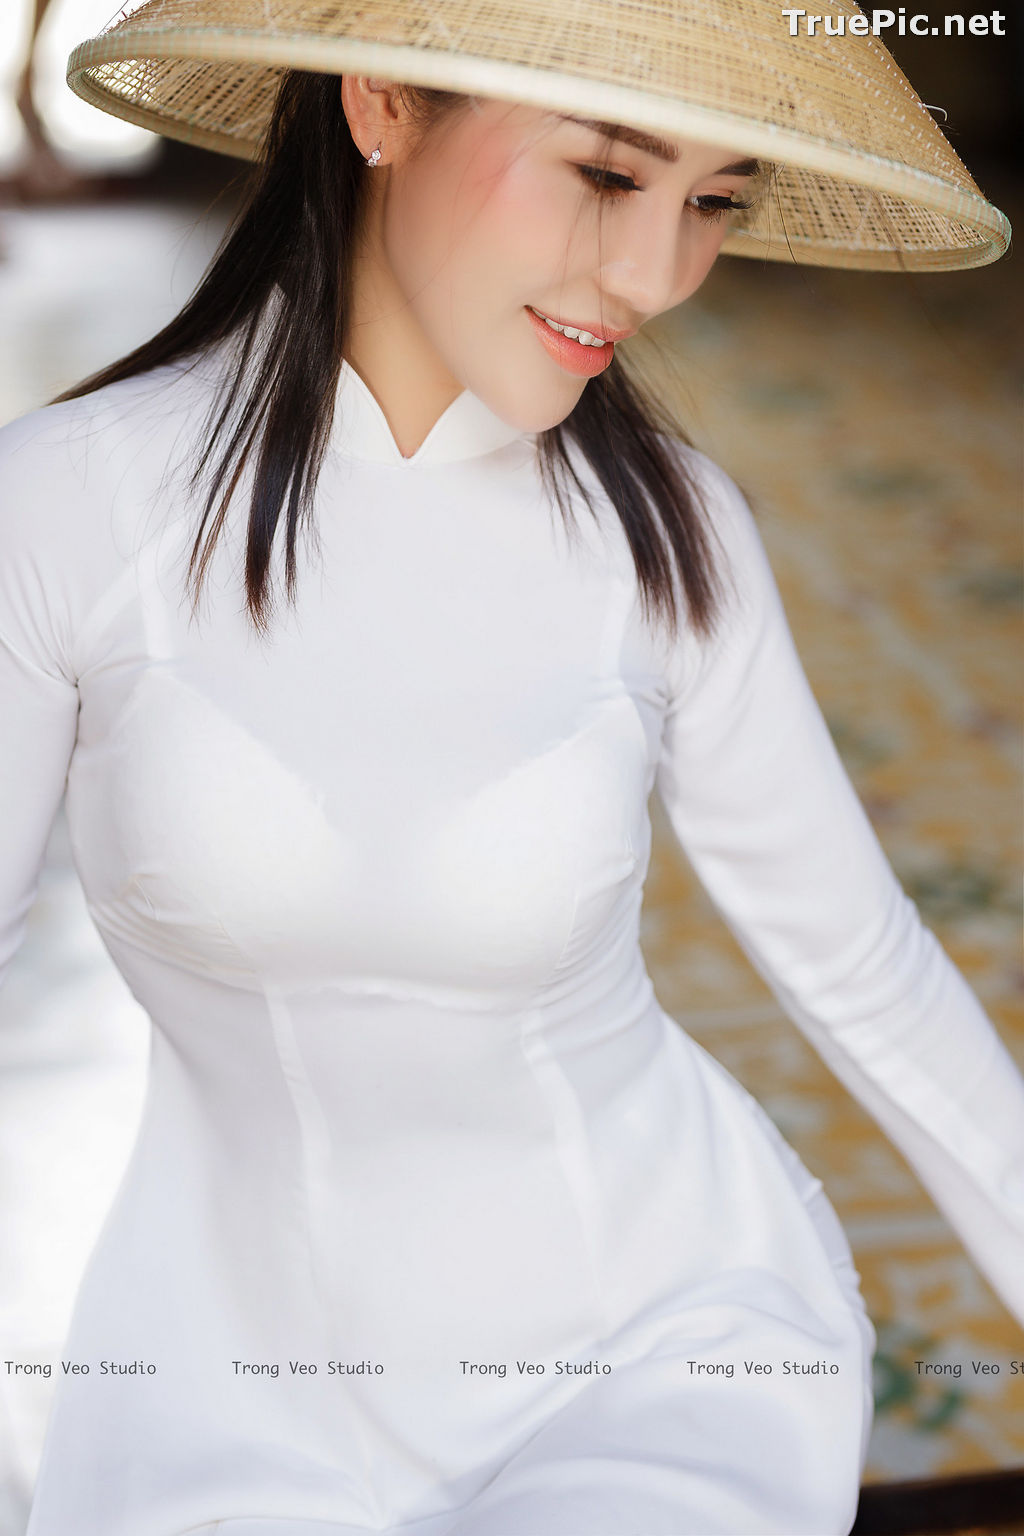 Image The Beauty of Vietnamese Girls with Traditional Dress (Ao Dai) #4 - TruePic.net - Picture-5